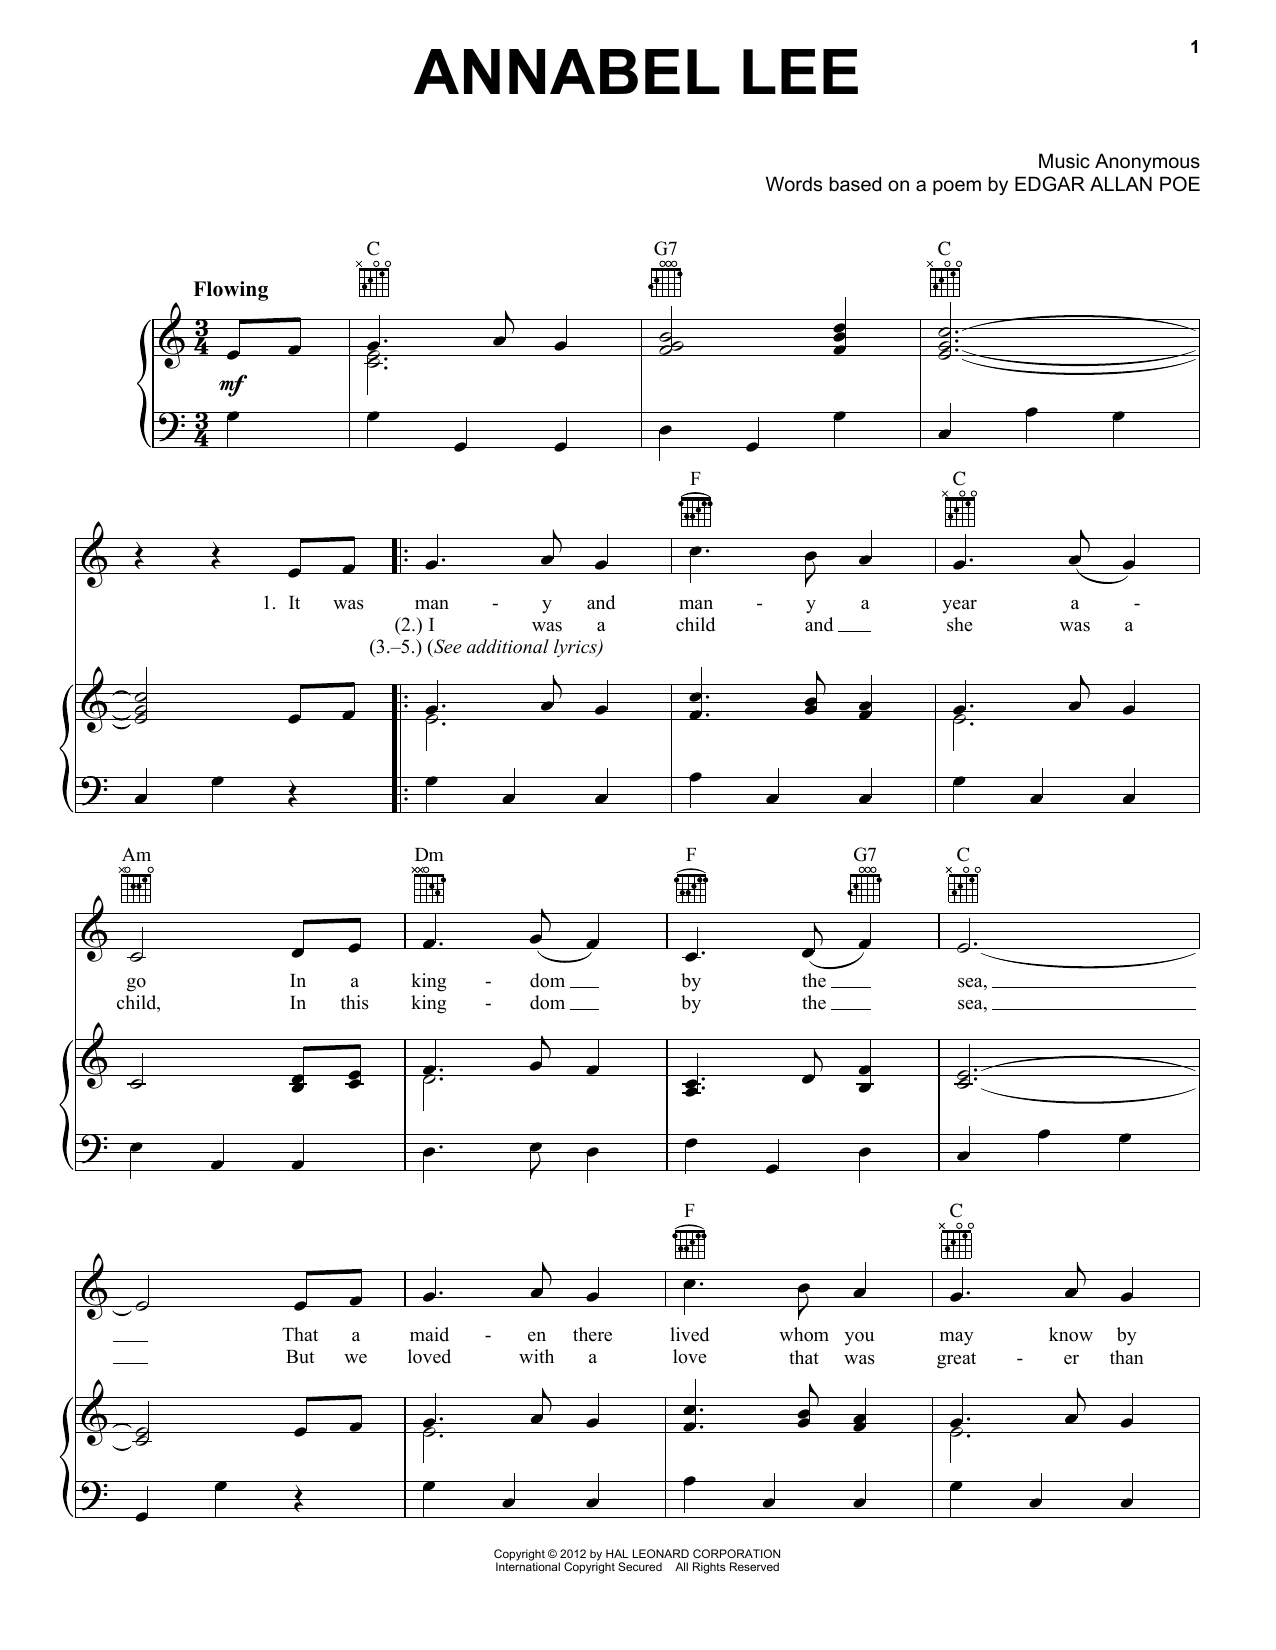 Traditional Folksong Annabel Lee sheet music notes and chords